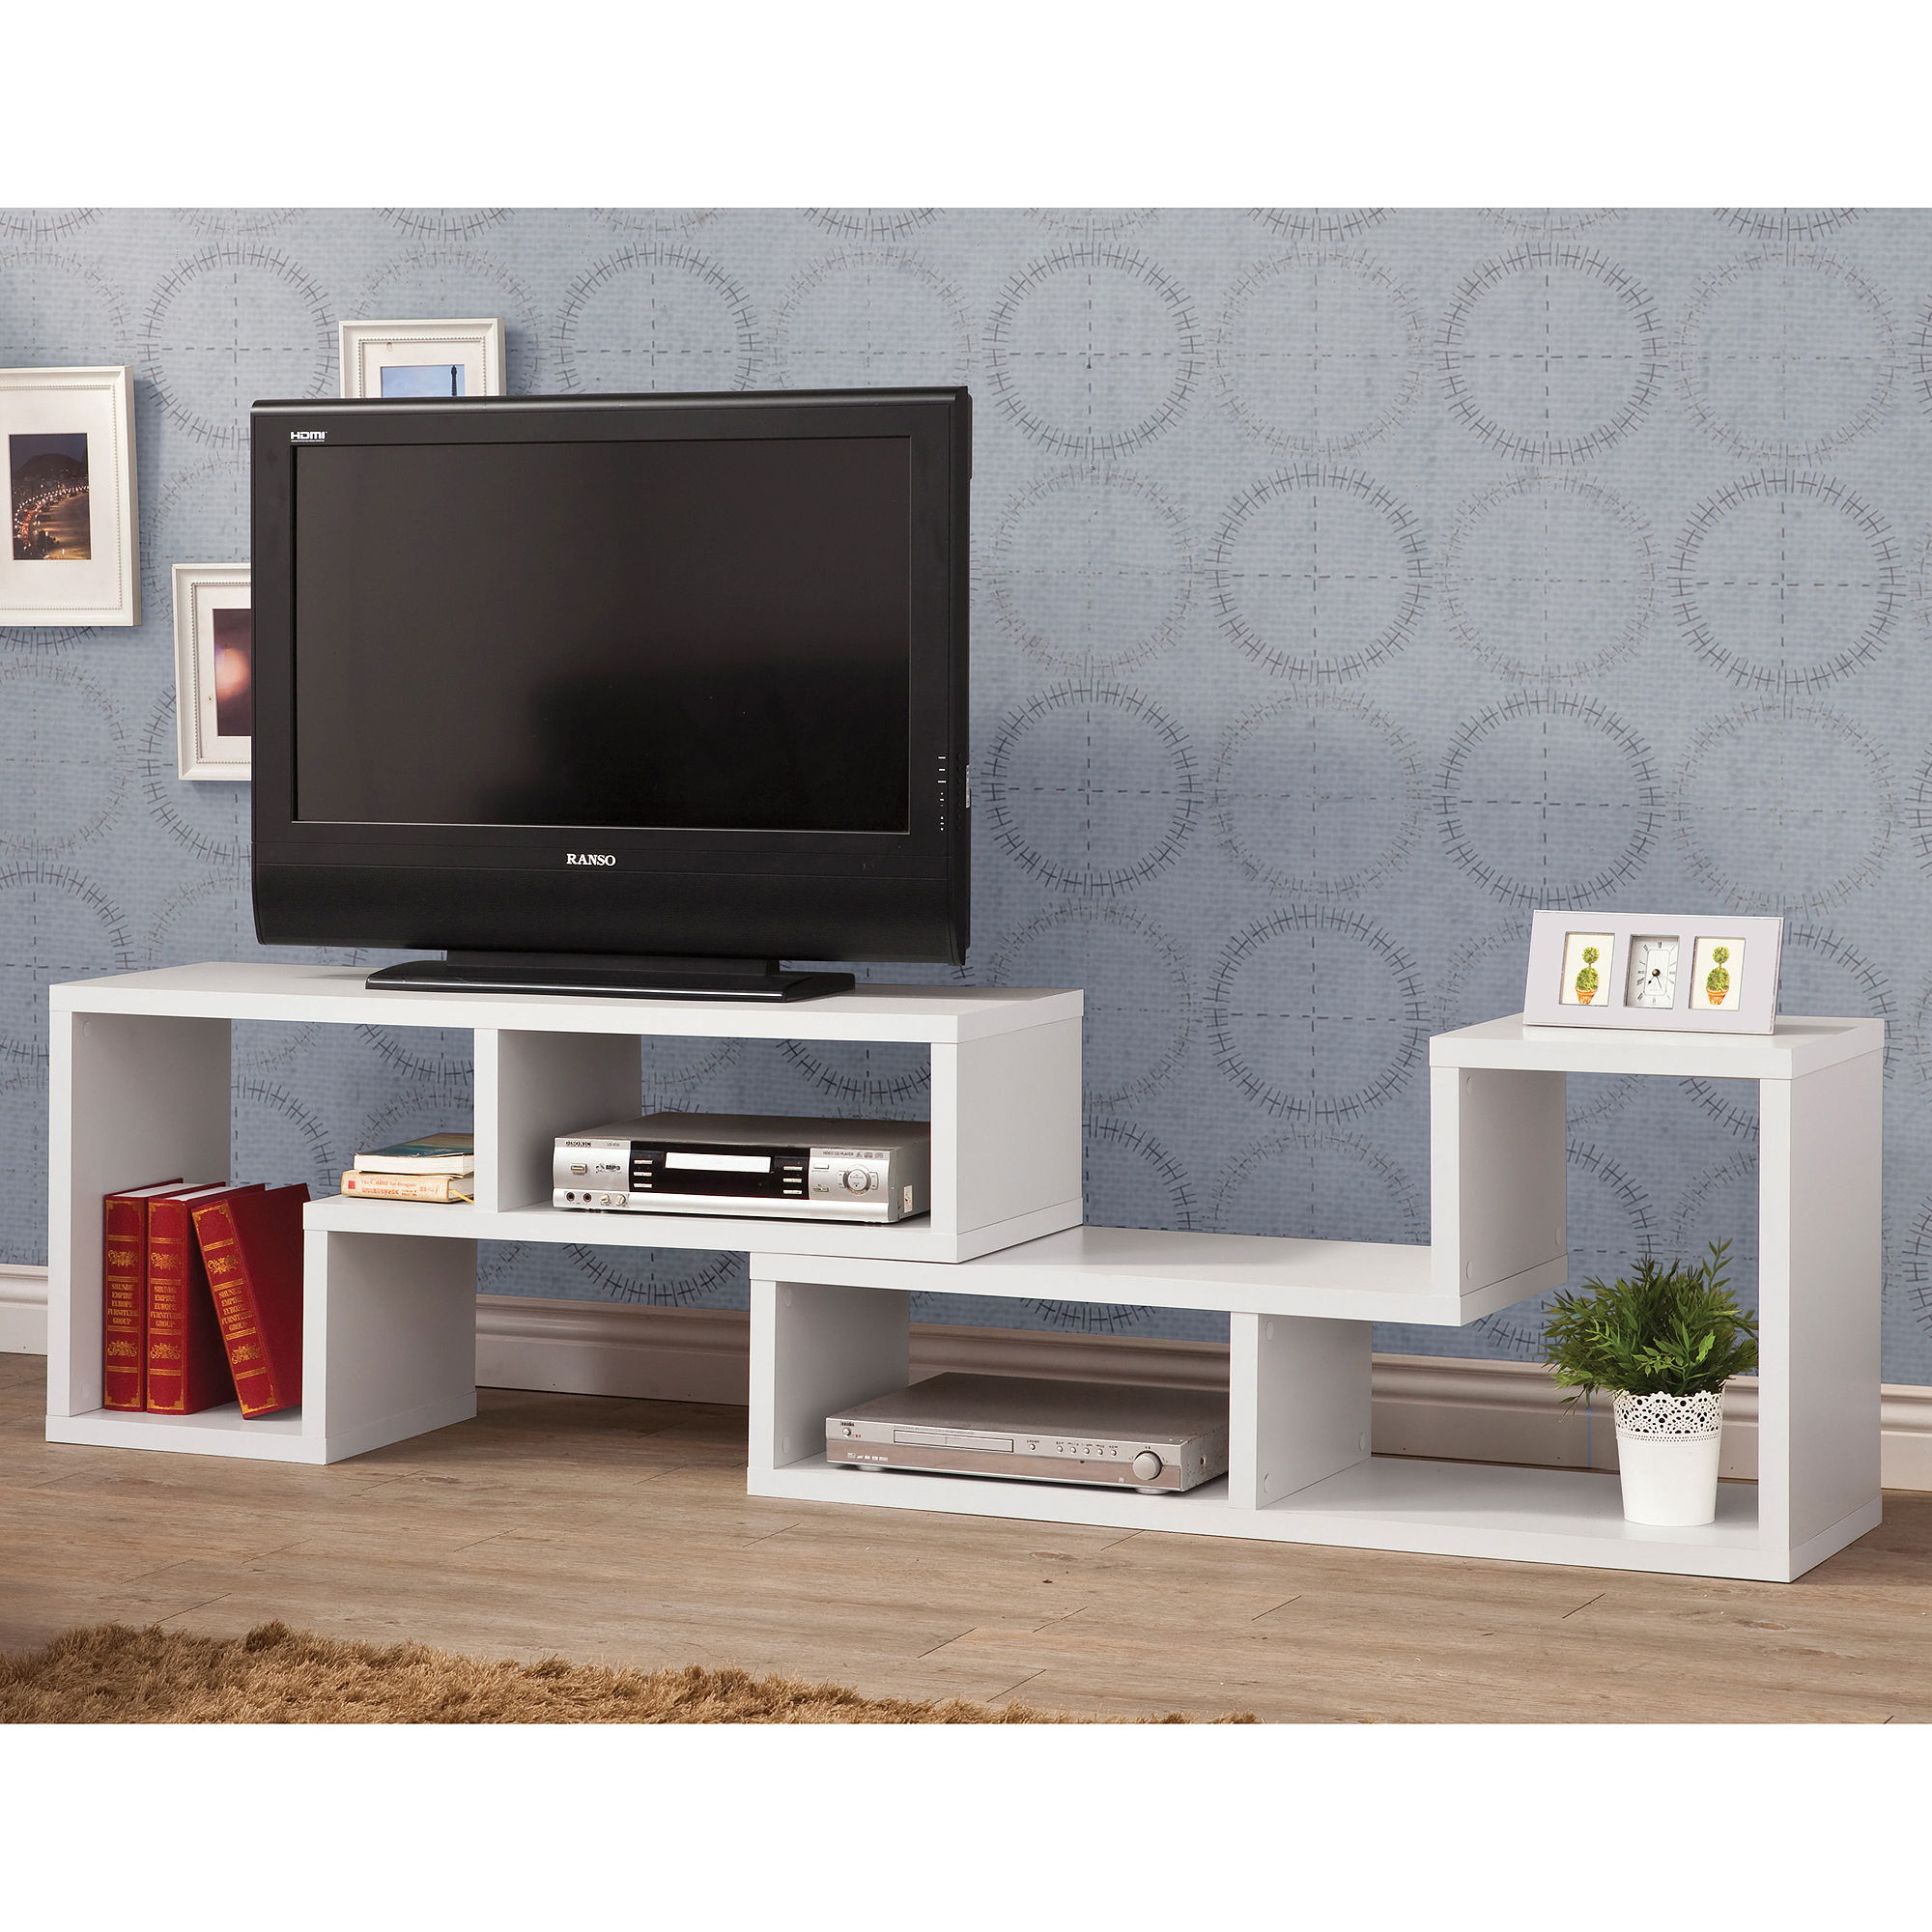 Coaster TV Console, Item 800330